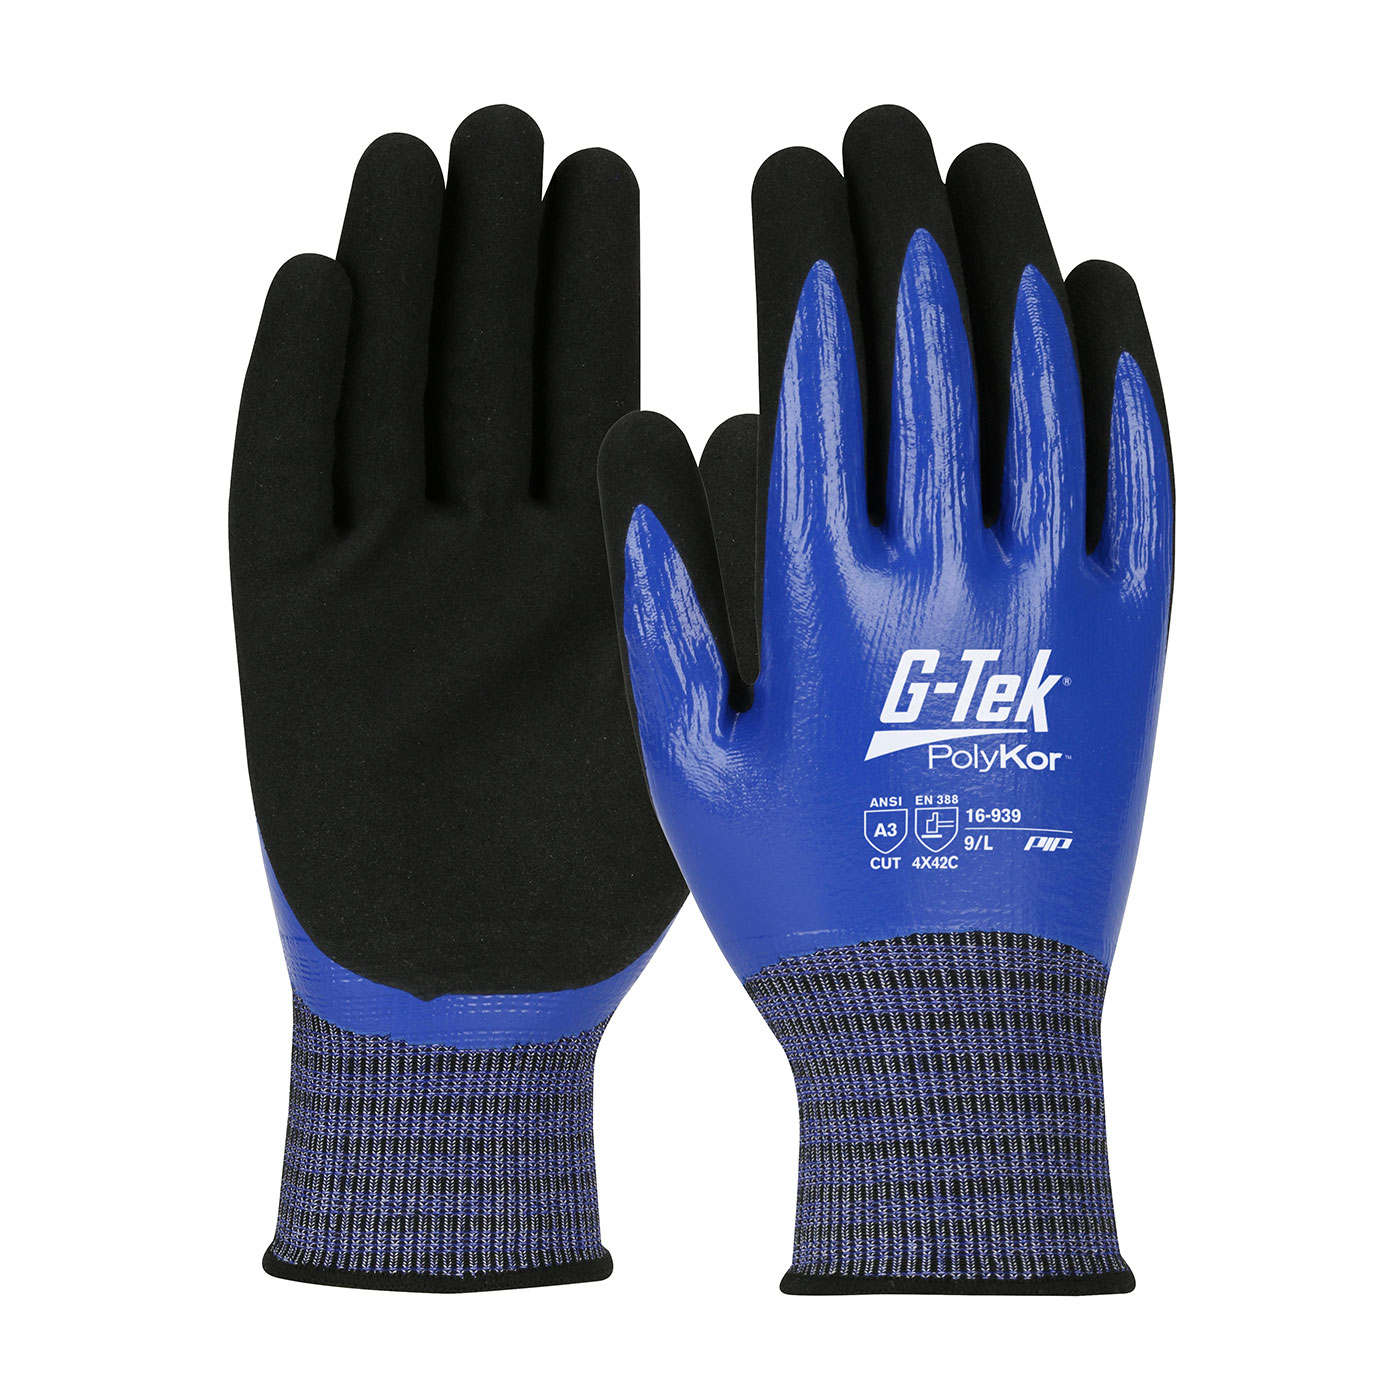 PIP® G-Tek® PolyKor® X7™ Fully Coated Seamless Knit X7™ Blended Glove with nitrile microsurface grip - Touchscreen Compatible #16-939